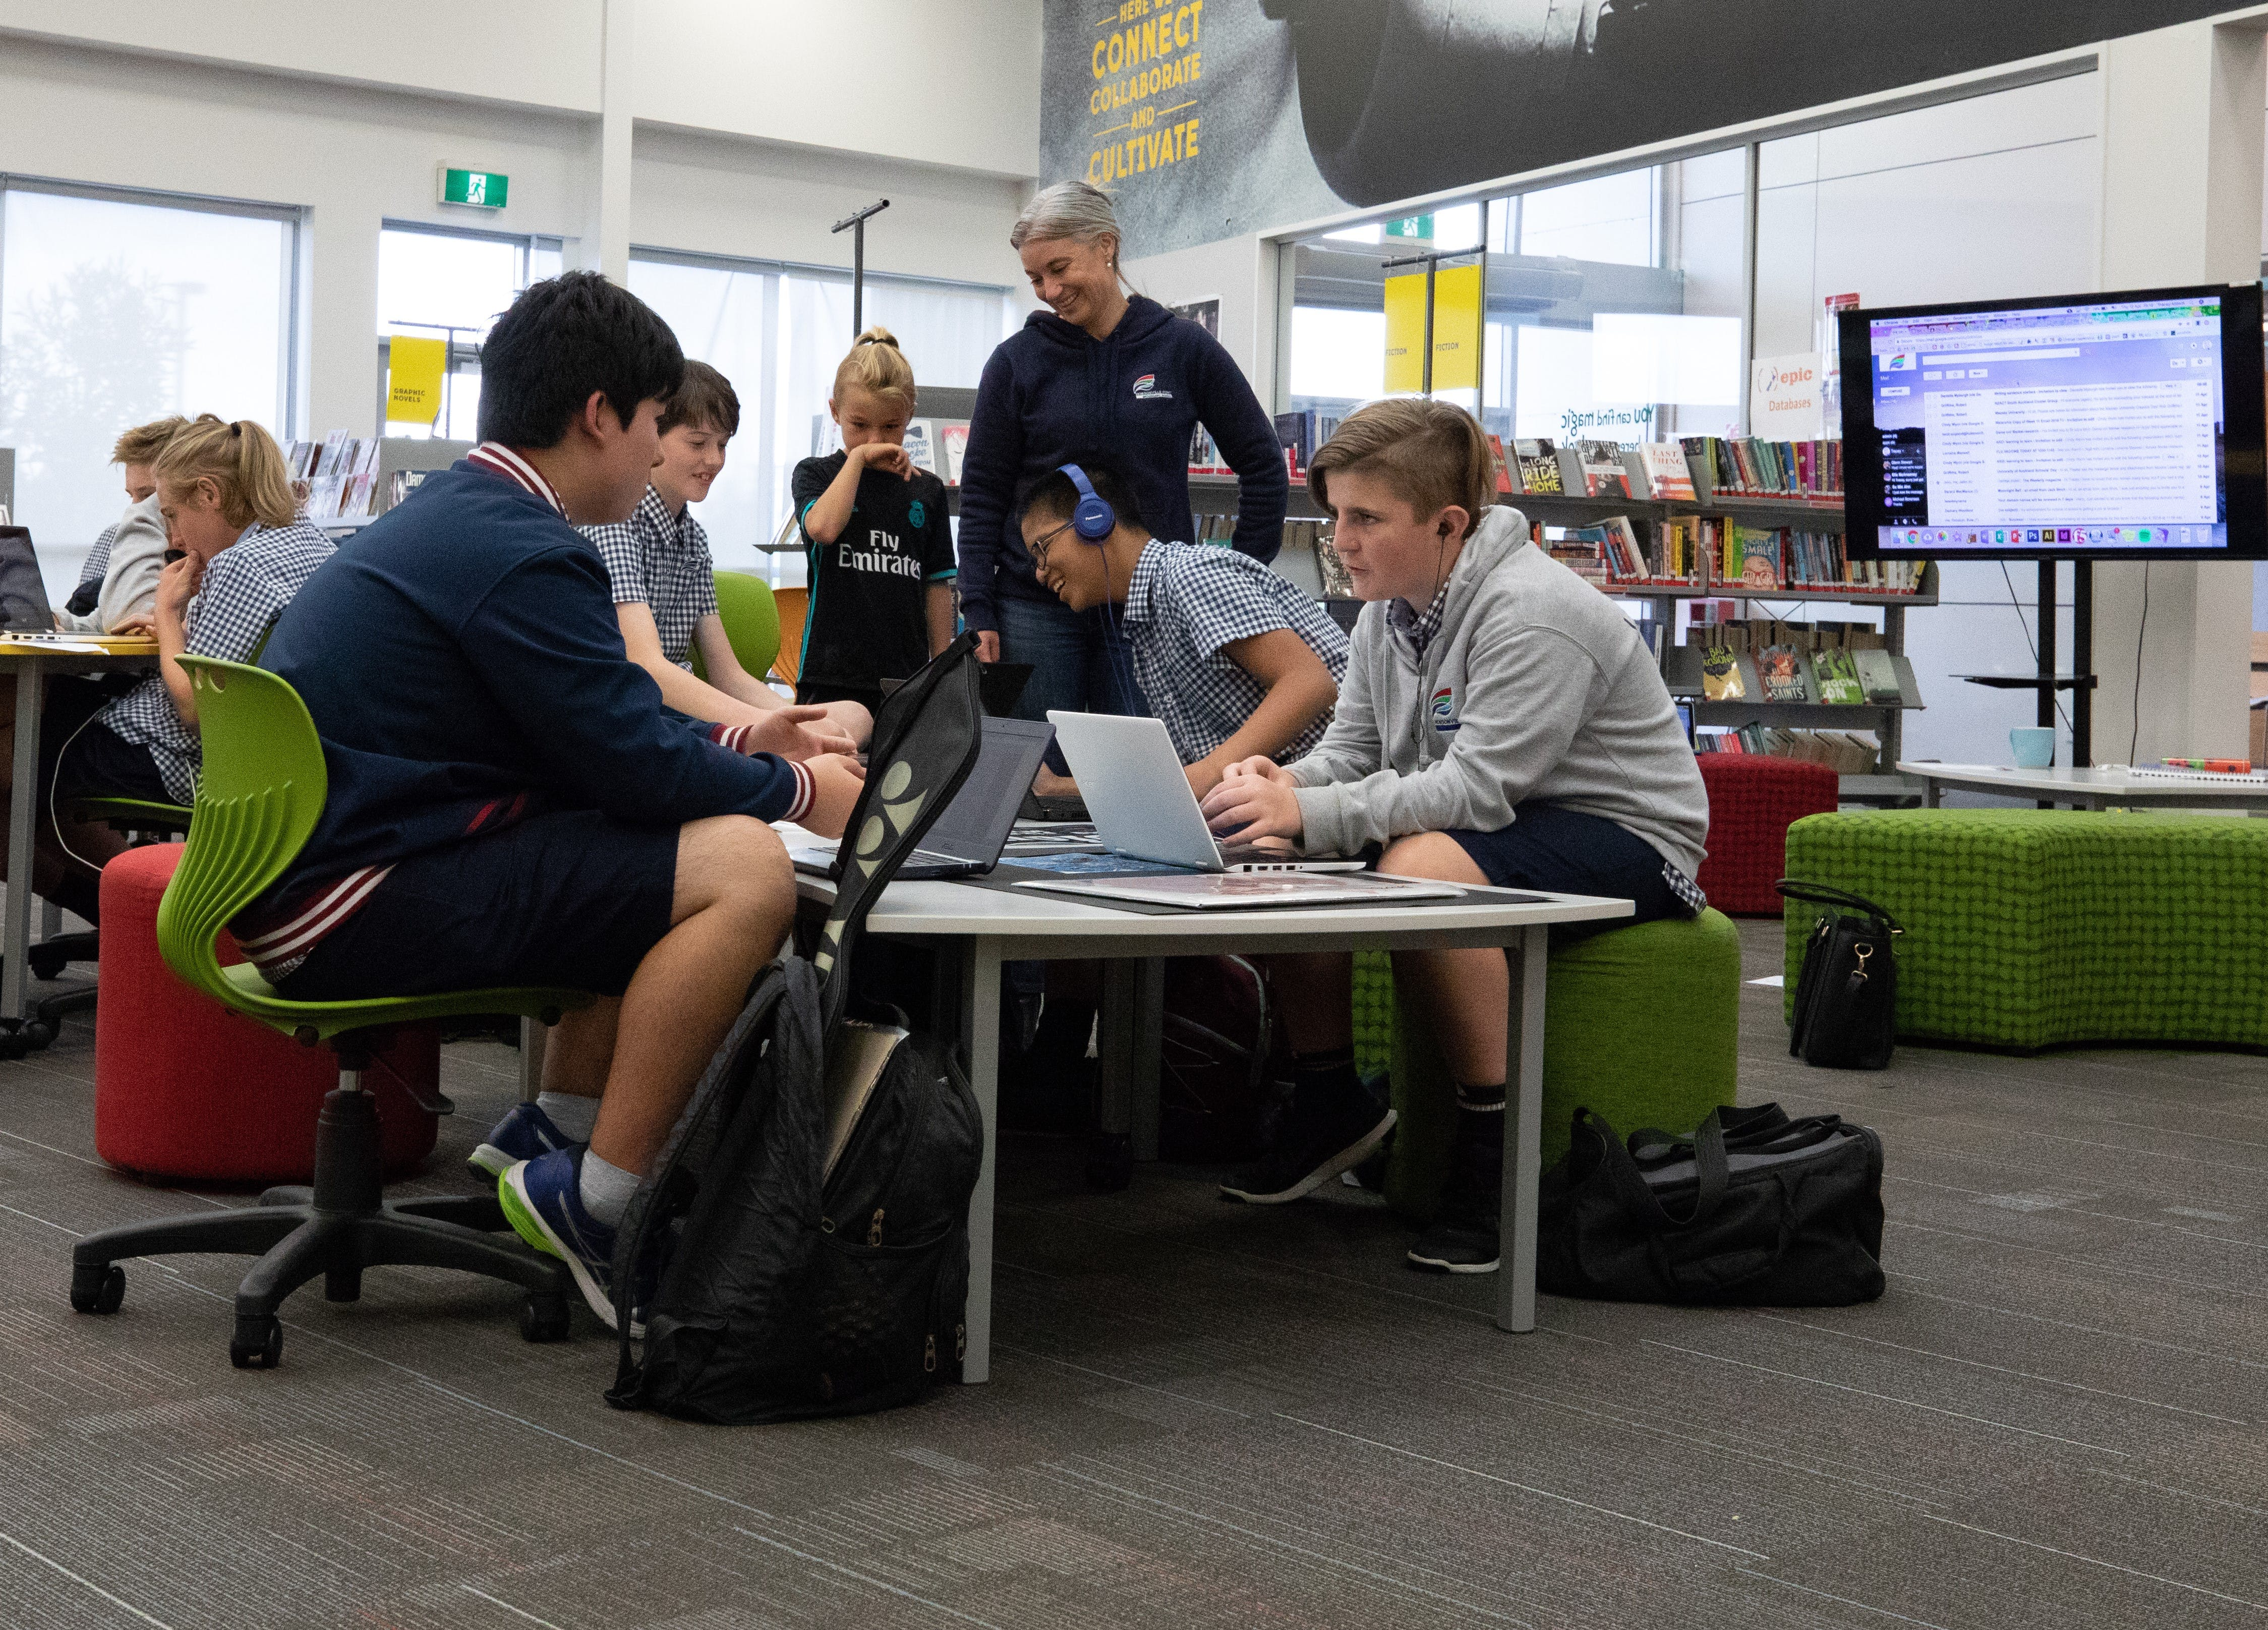 A teacher and her students working collaboratively on their devices at Hobsonville Point Secondary School